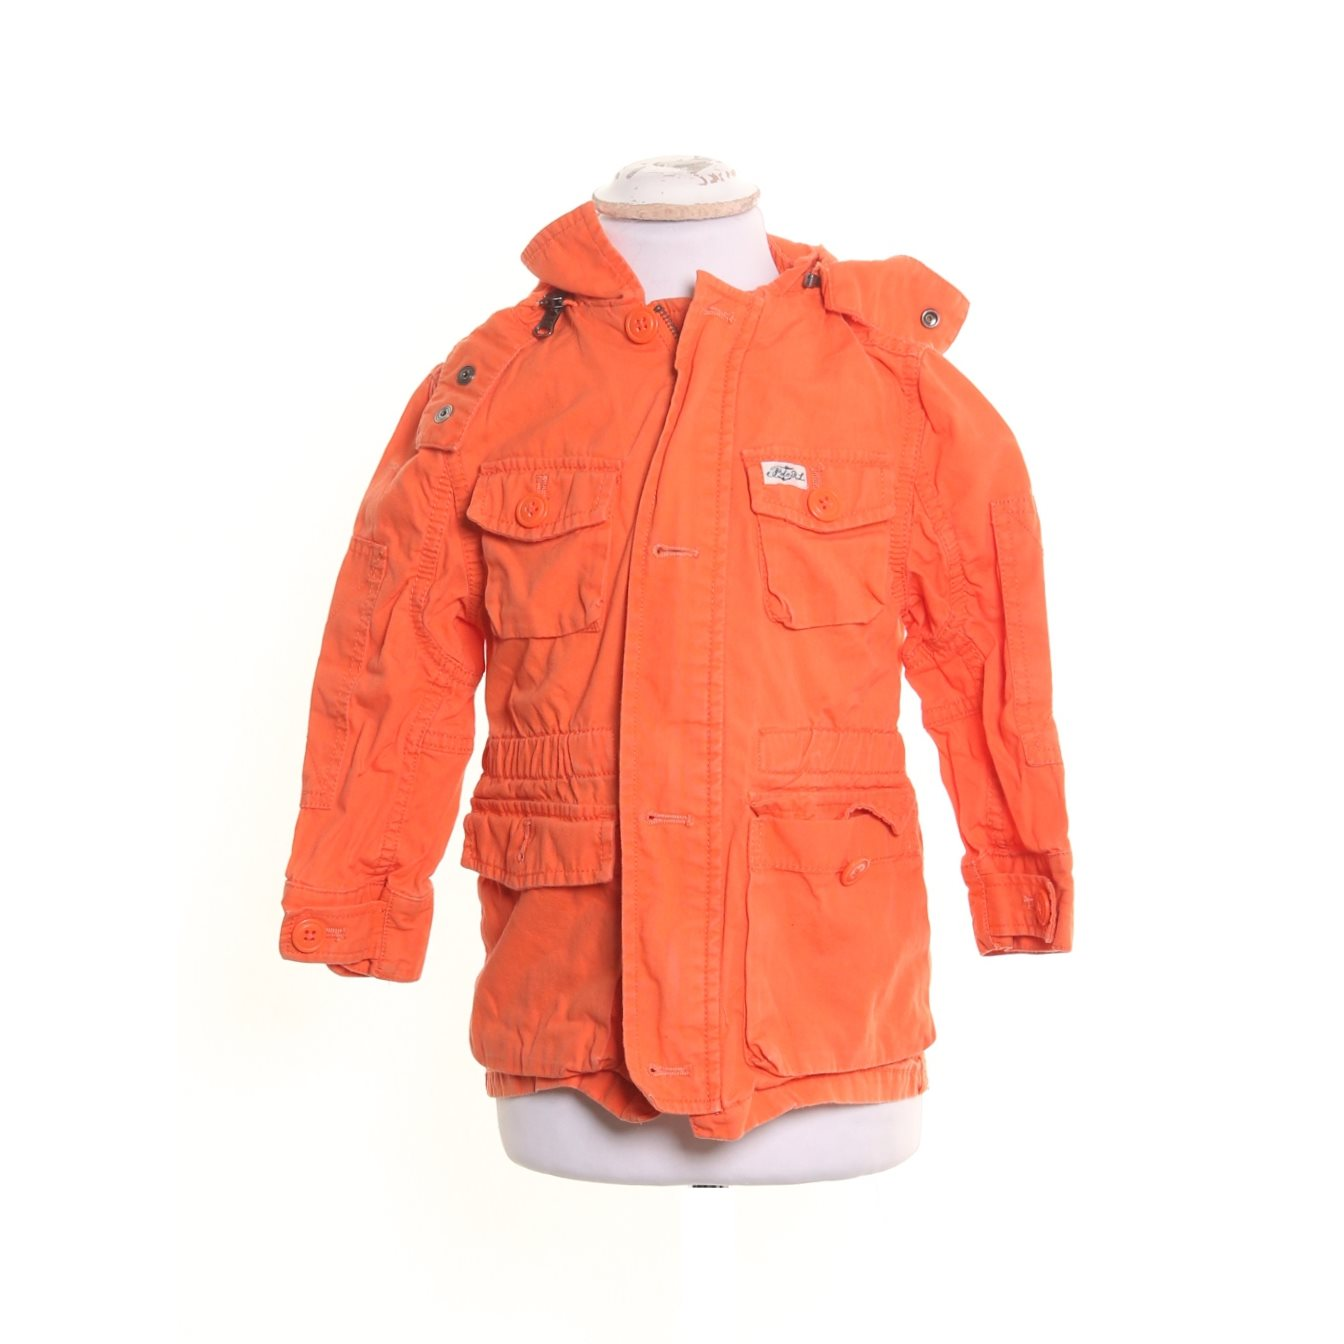 Ralph lauren jacka orange